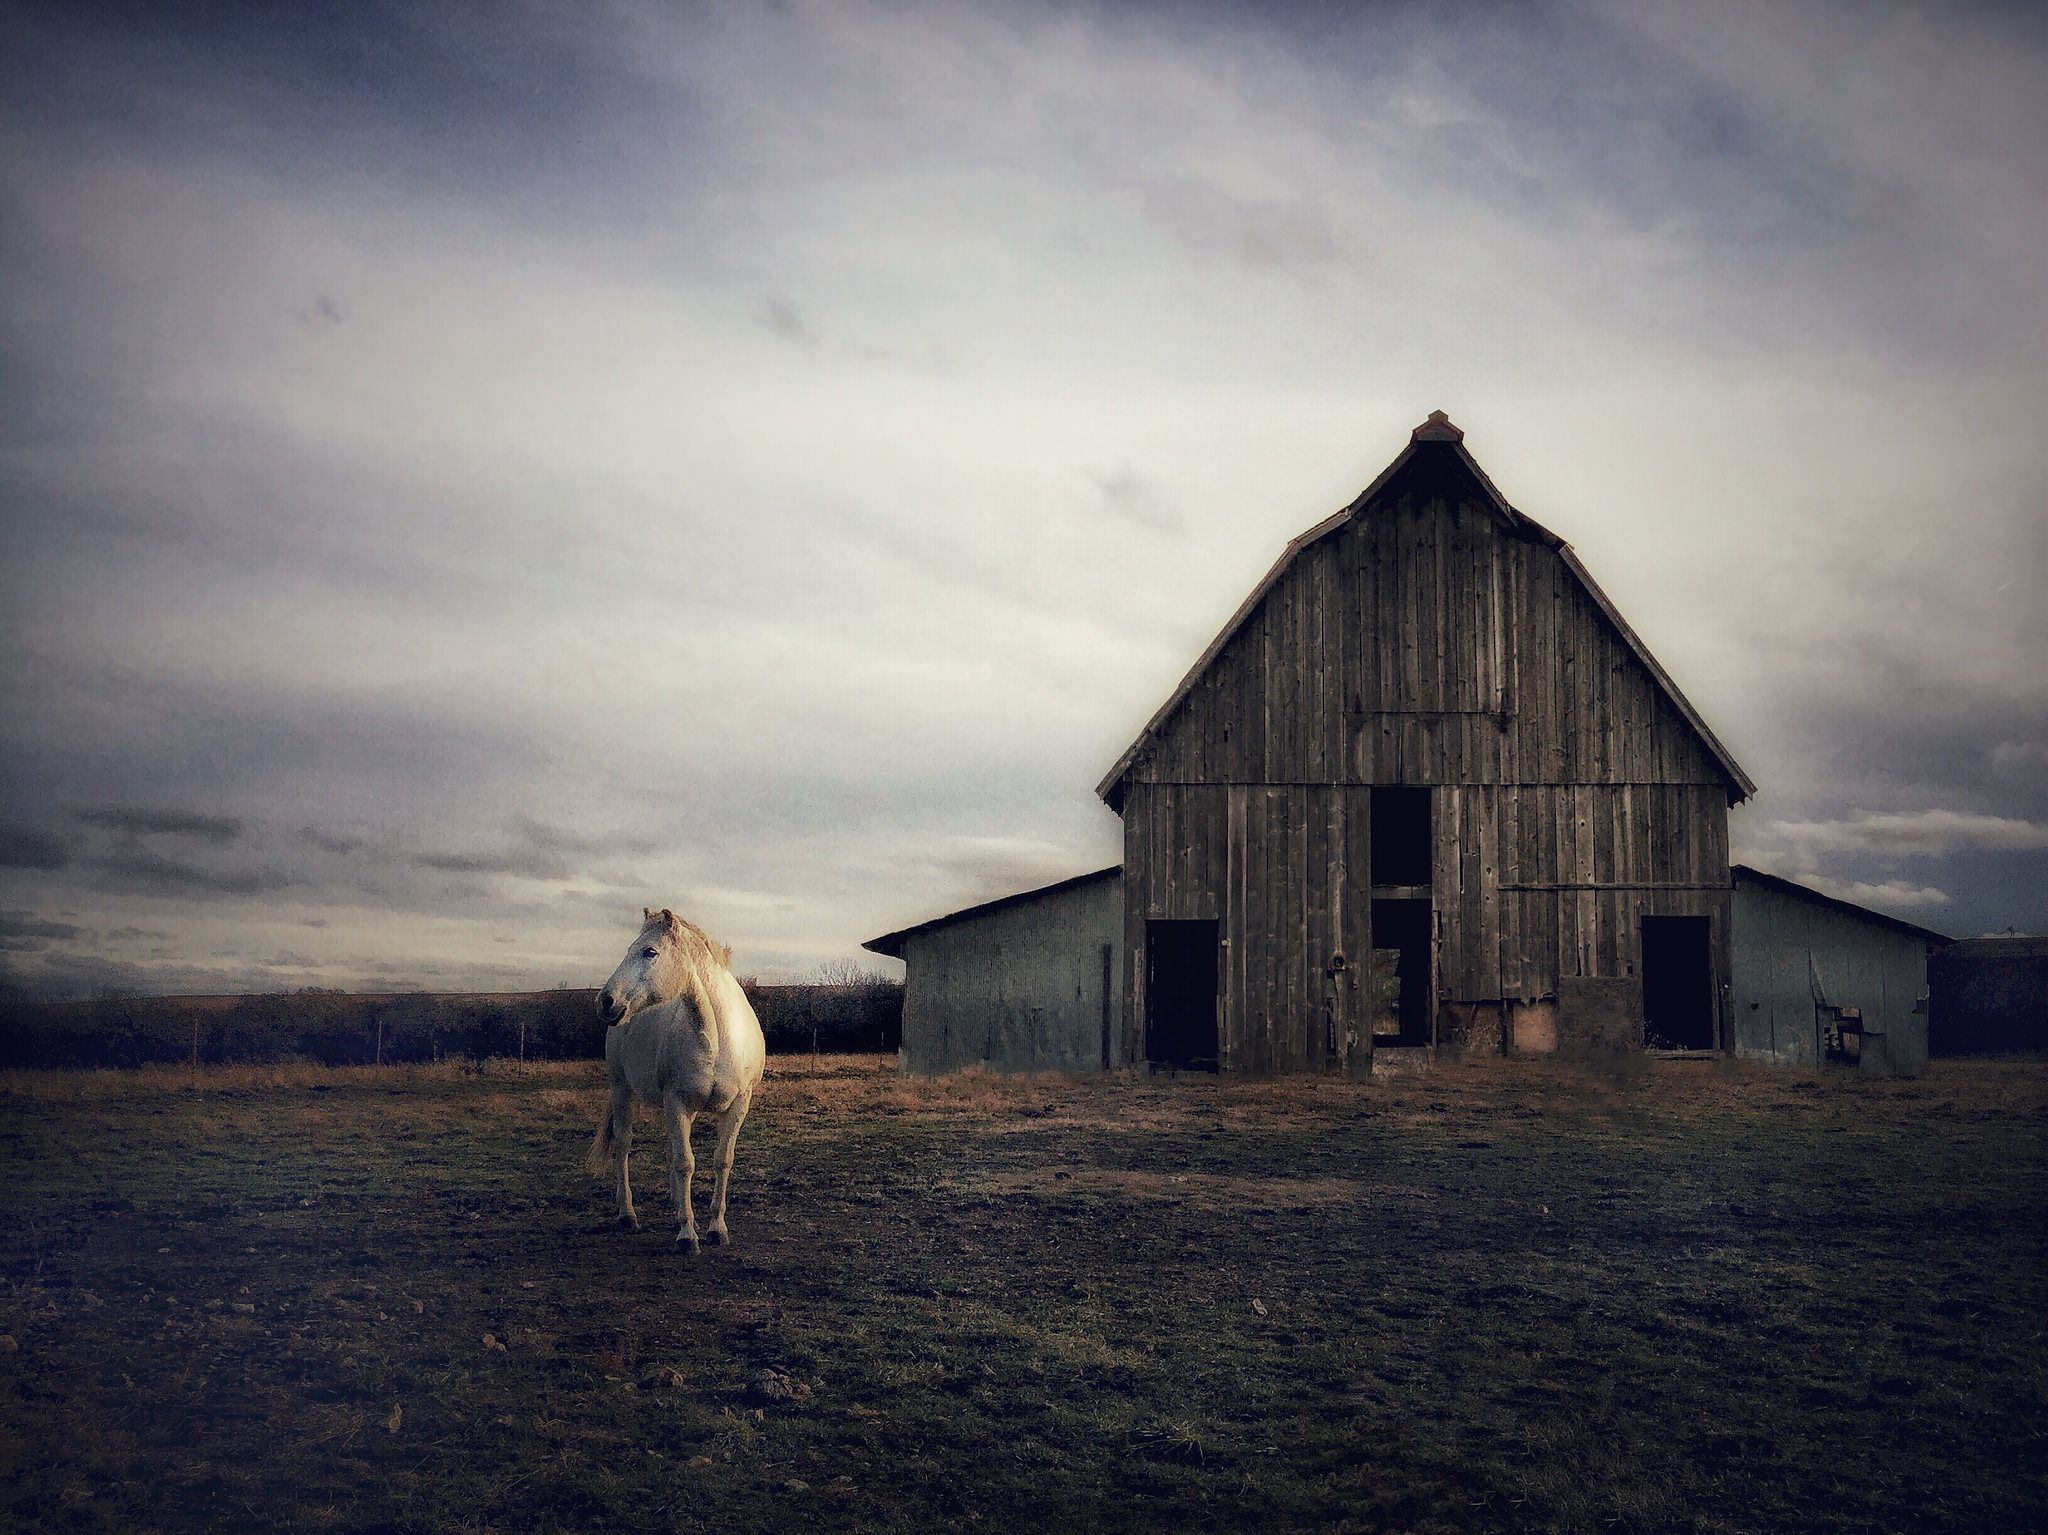 https://flic.kr/p/KLnsco | White Horse, Old Barn | Butler County, Kansas.